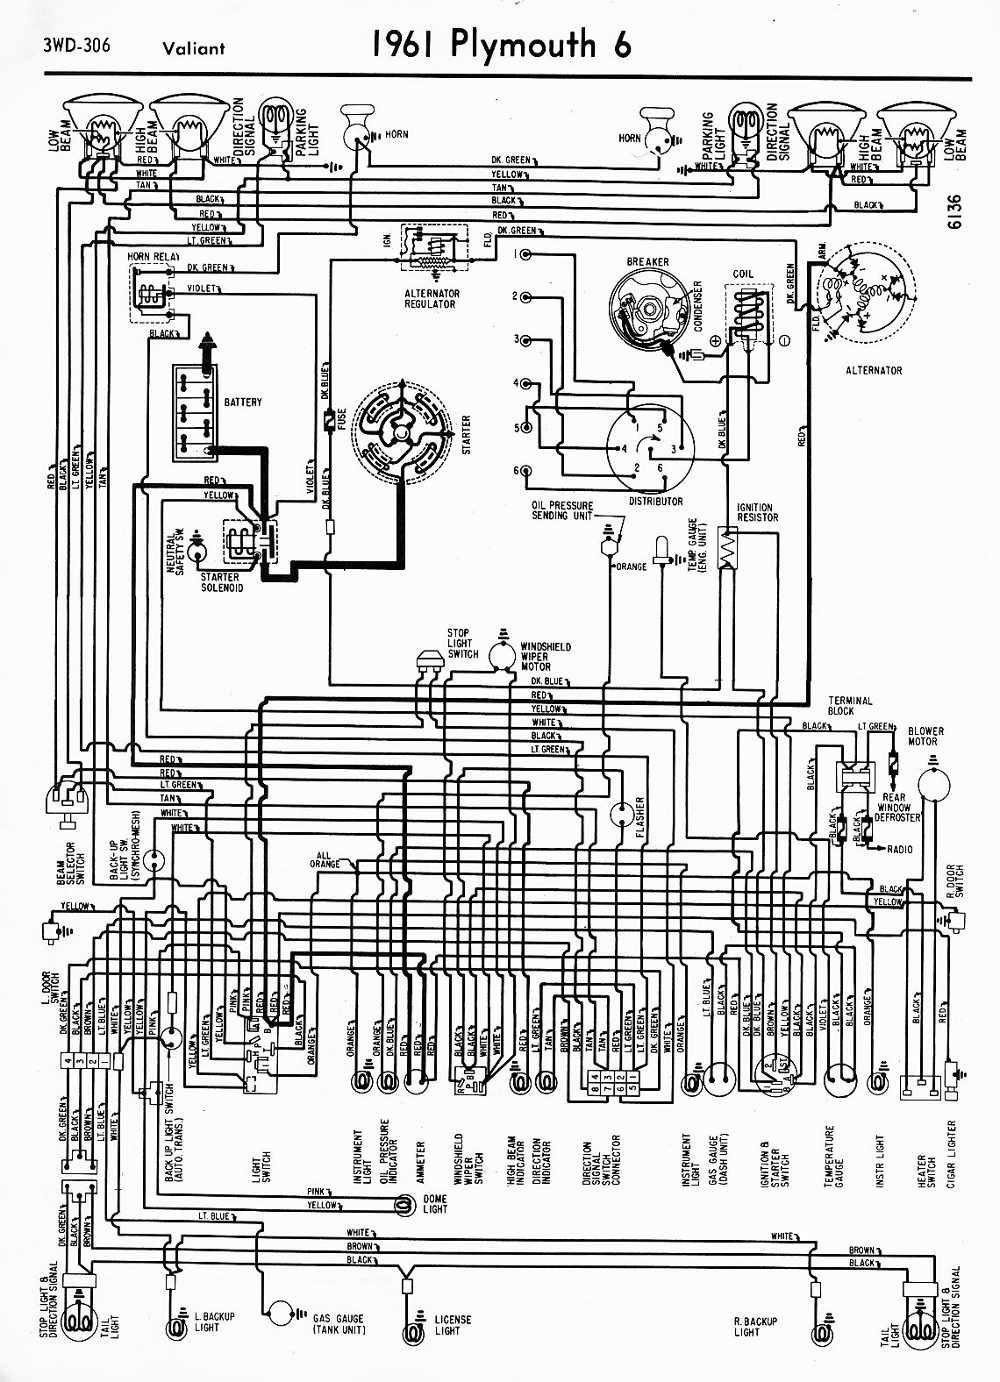 wiring diagrams of 1961 plymouth 6 valiant?t\\\=1508746019 1955 plymouth wiring diagram 1955 wiring diagrams instruction 1970 dodge coronet wiring diagram at couponss.co